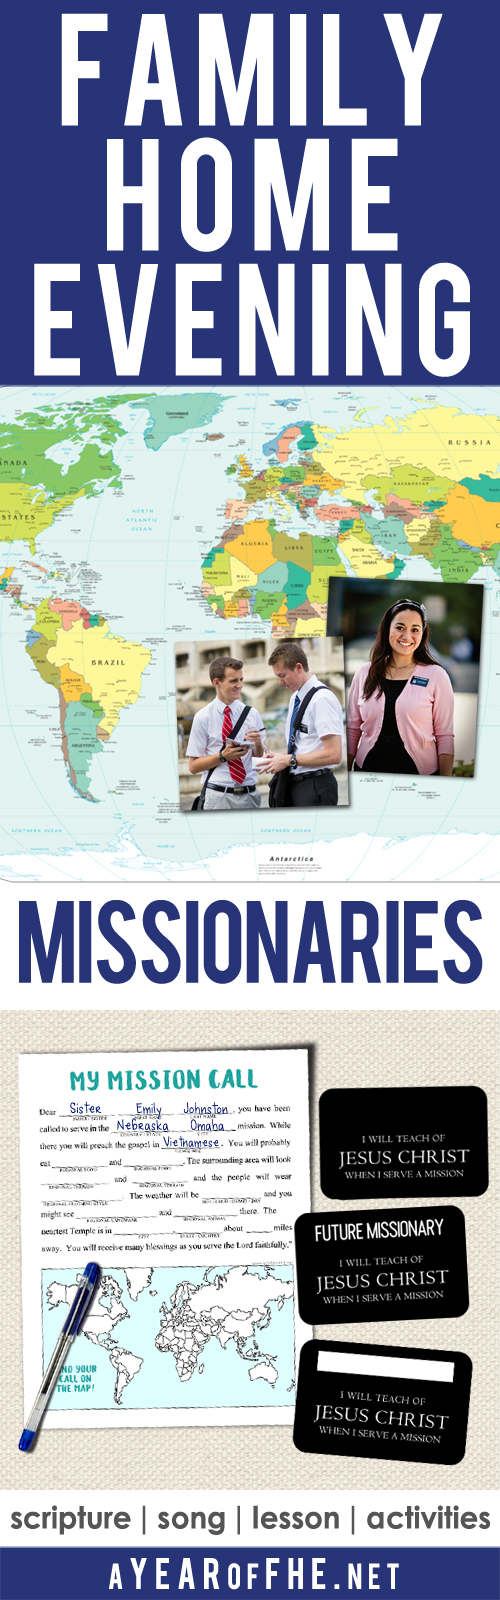 picture about Future Missionary Tag Printable identified as A 12 months of FHE: Yr 02/Lesson 09: Missionaries